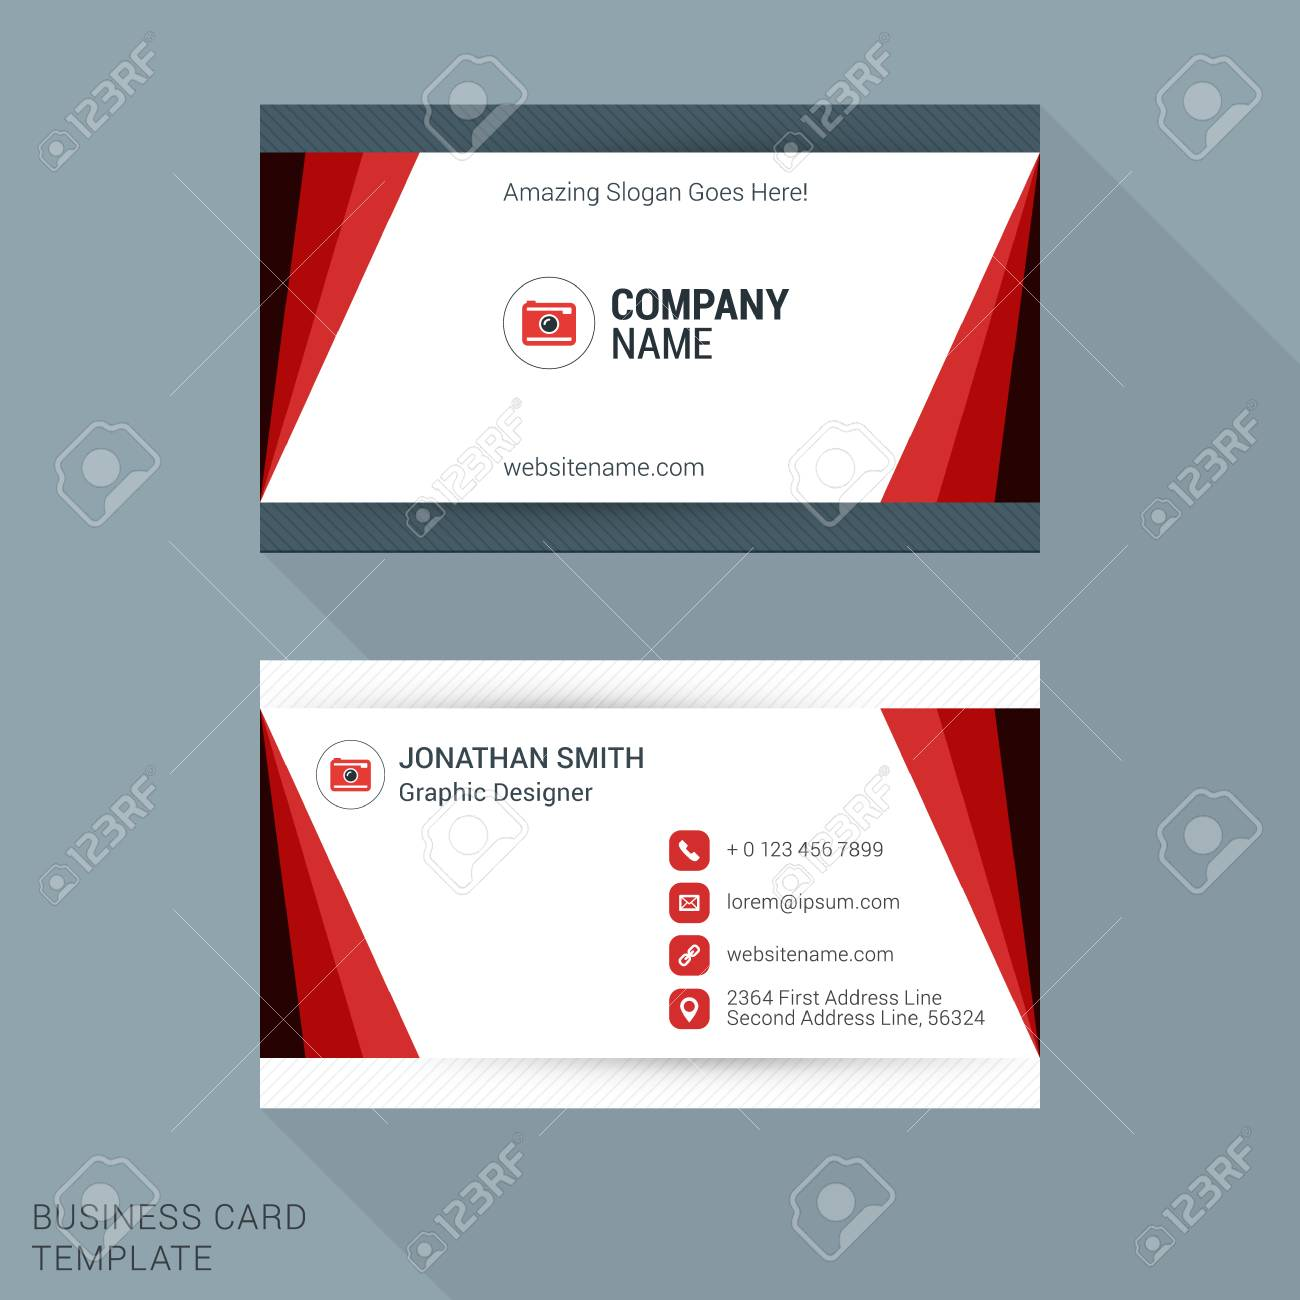 Modern creative and clean business card template in red color modern creative and clean business card template in red color vector illustration stock vector reheart Images